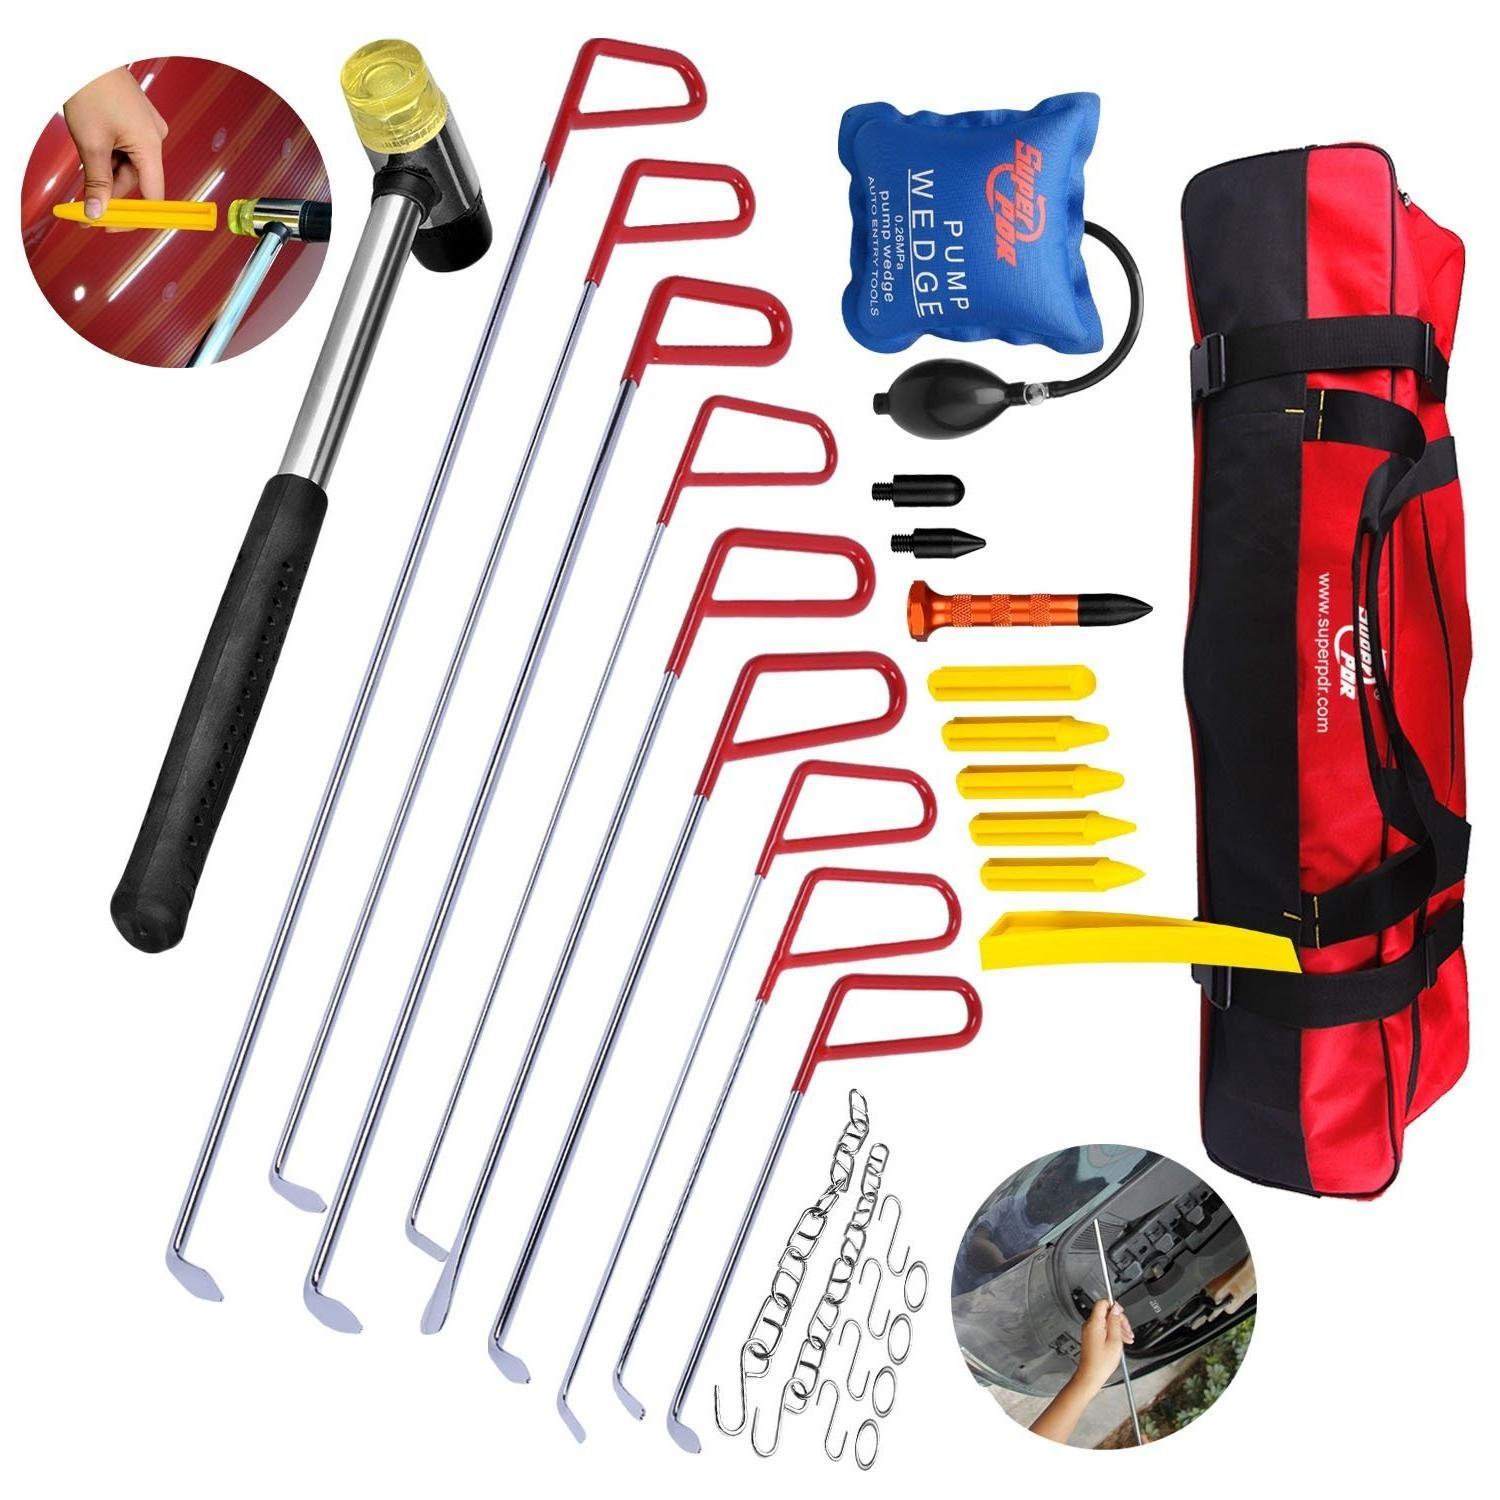 31Pcs PDR Rods Dent Puller Kits AUTOPDR Pop a Dent Auto Car Body Paintless Dent Removal Remover Repair Tools Automobile Master Hail Damage Hand Tools Door Ding Air Wedge Pump Hammer with Tool Bag